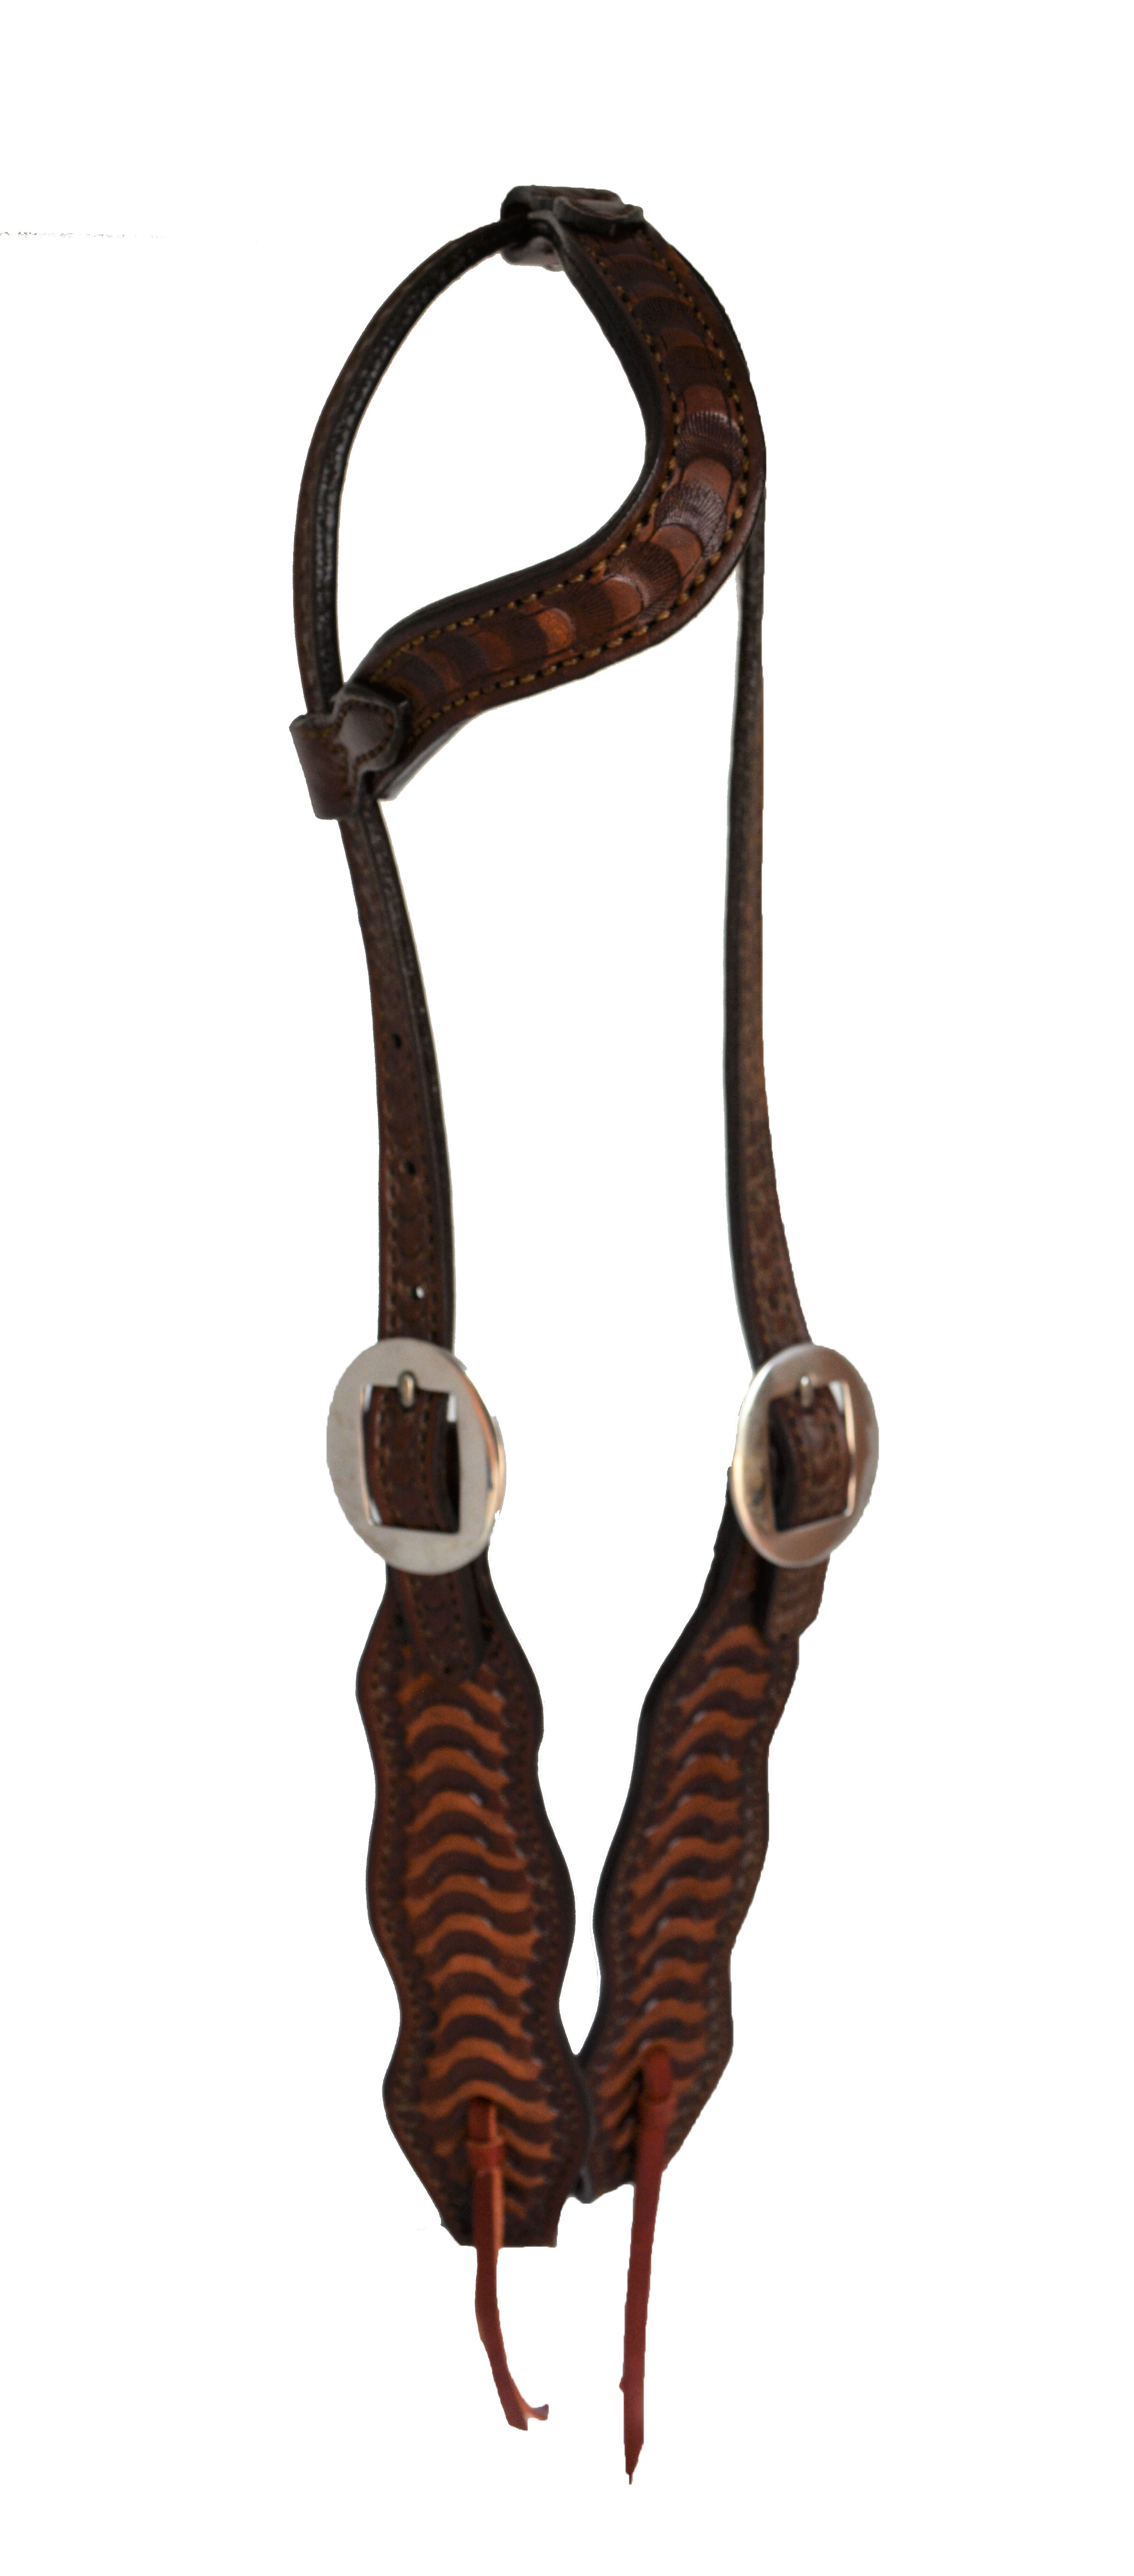 2474 ONE EAR WAVE HEADSTALL WITH WAVE TOOLING